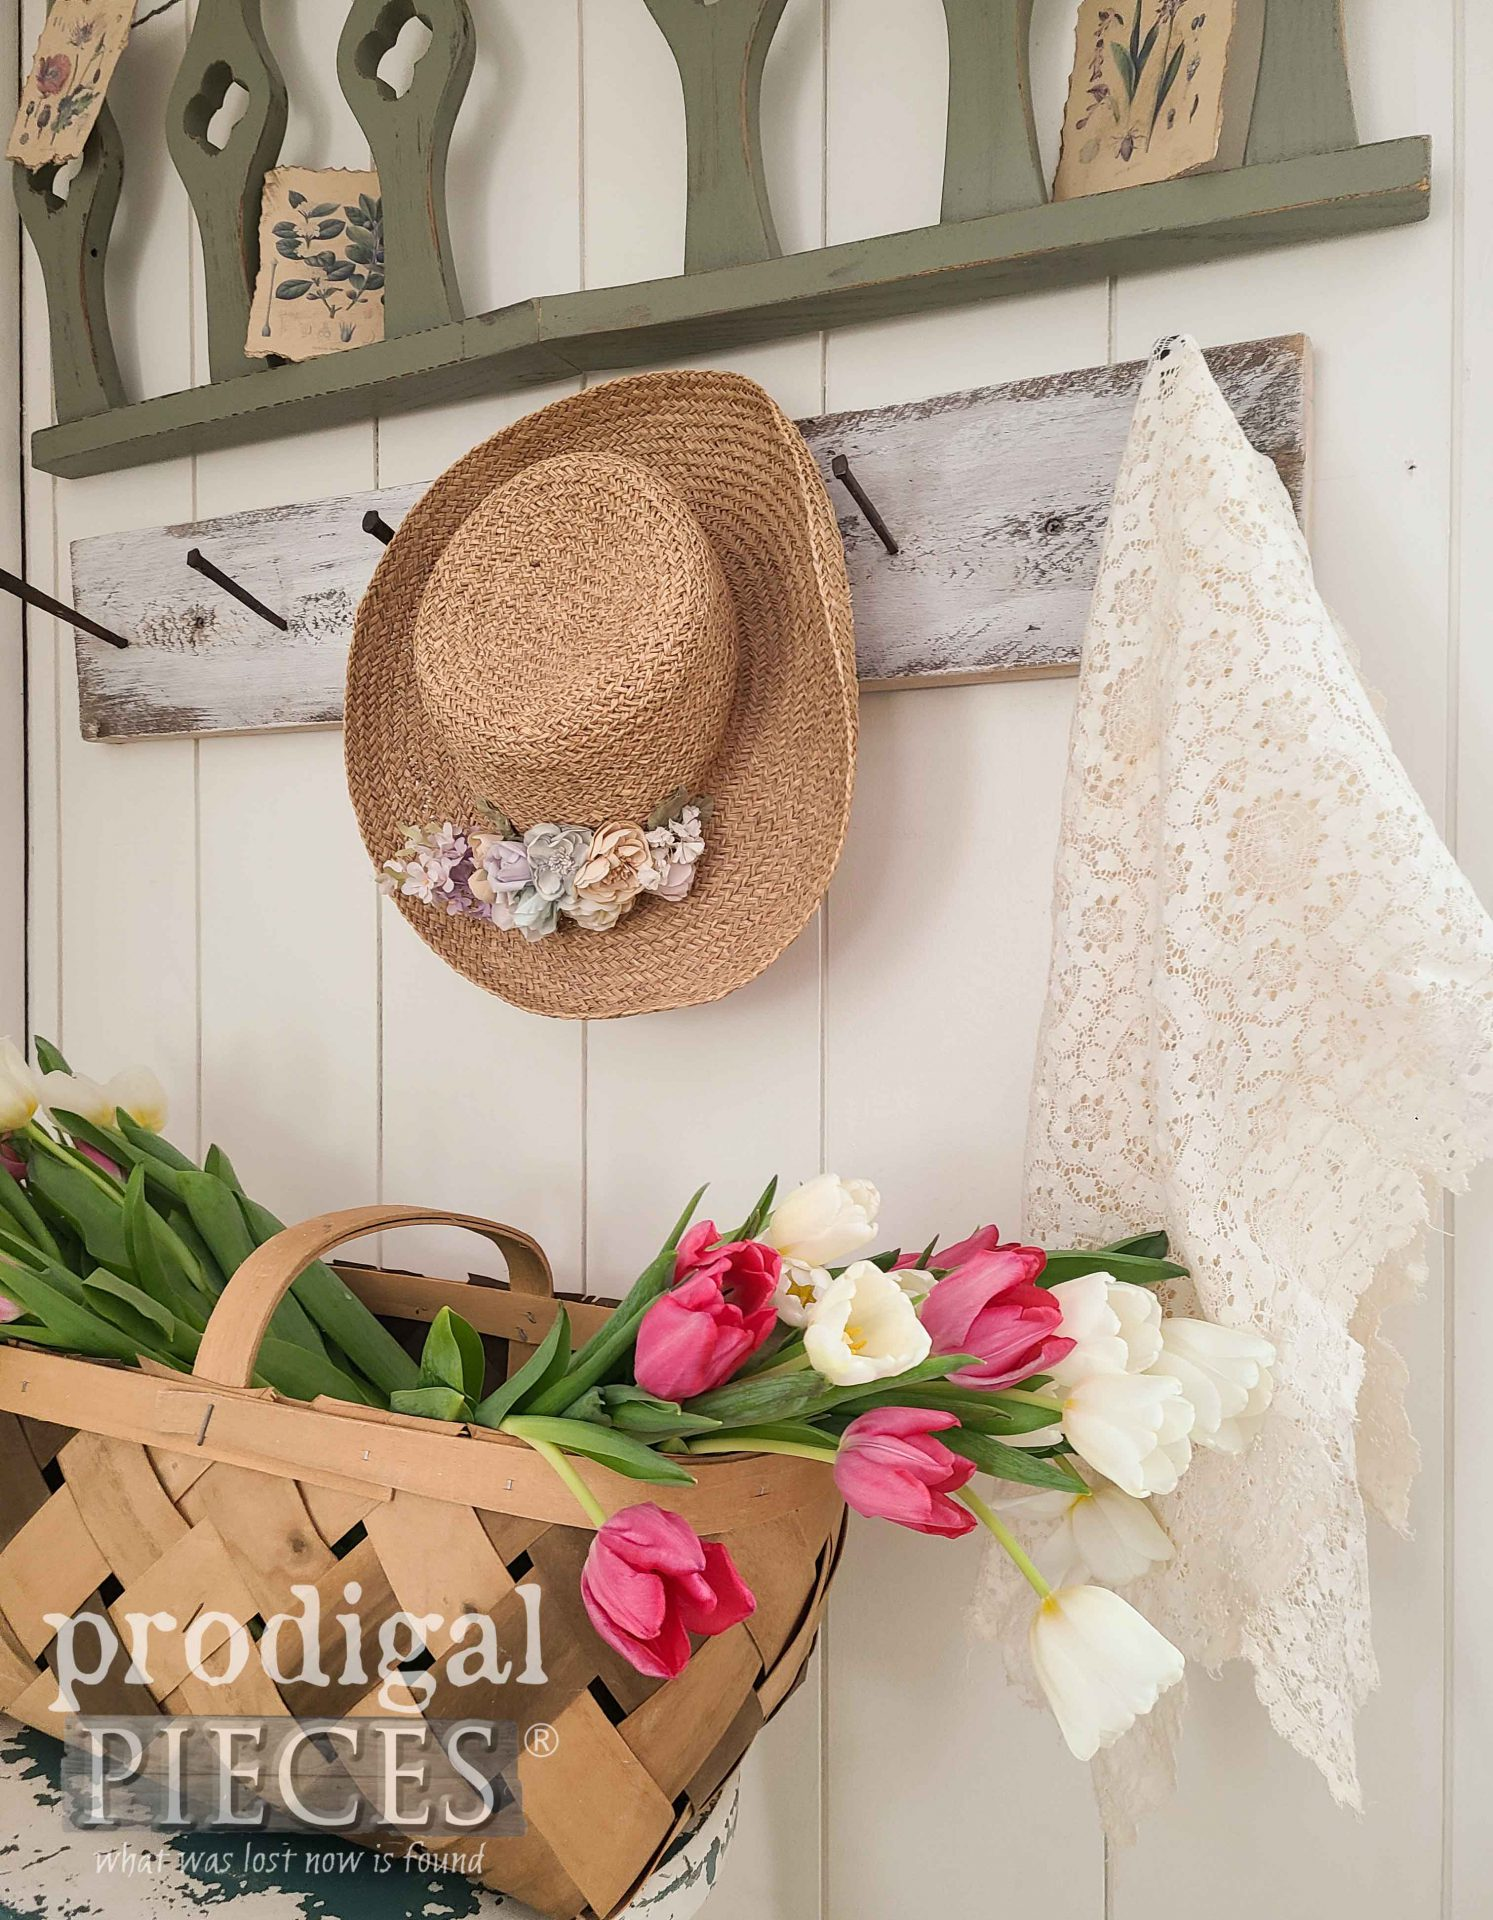 Simple Spring Decor from Salvaged Find by Larissa of Prodigal Pieces | prodigalpieces.com #prodigalpieces #spring #diy #home